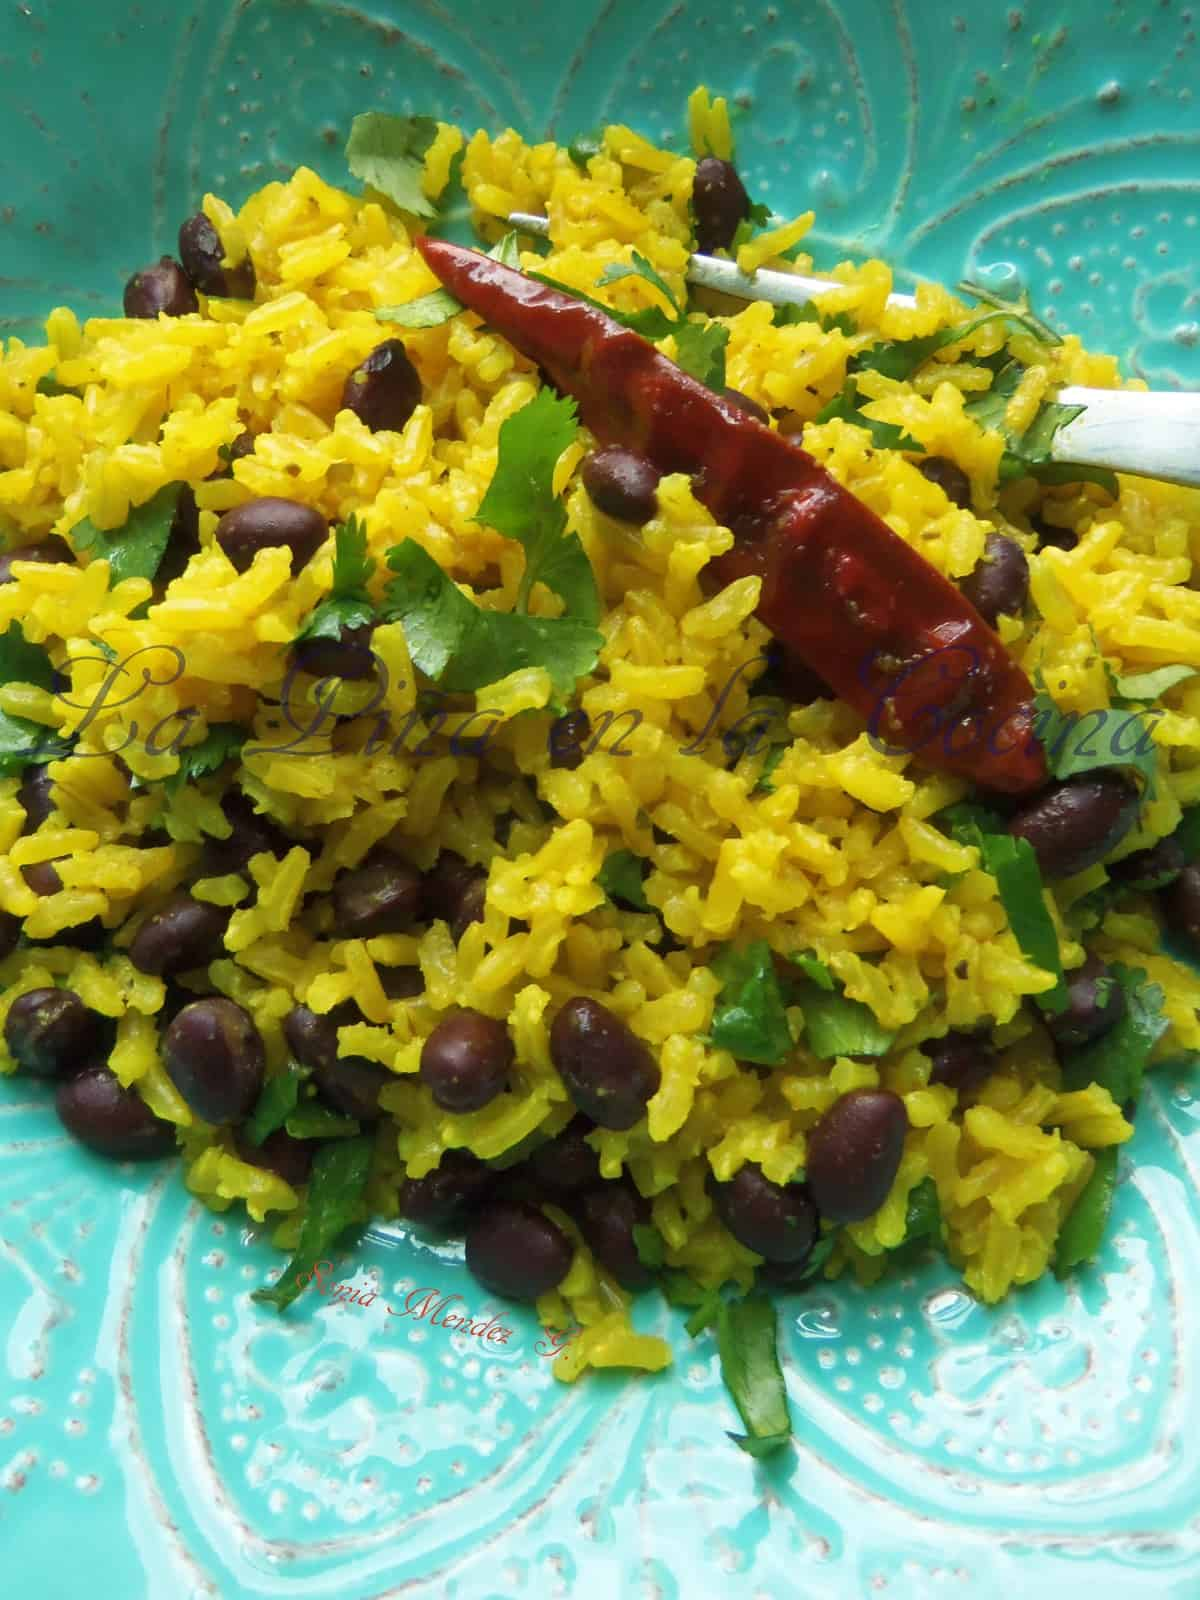 Parboiled brown (yellow) rice & beans.